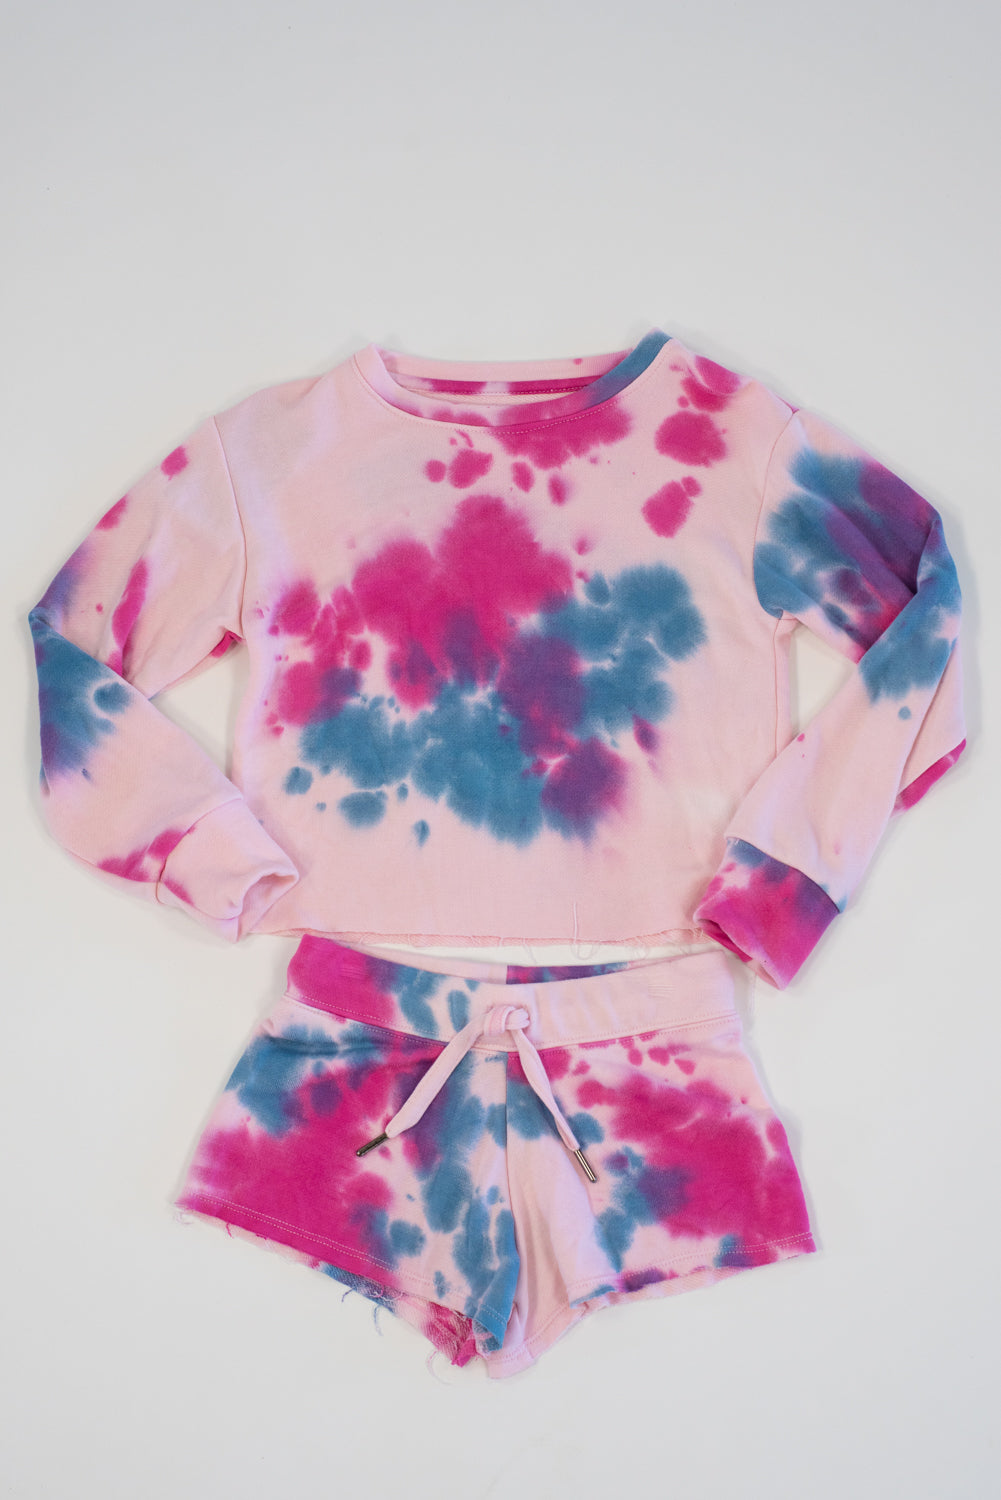 *Blush Tiedye Raw Edge Shorts*